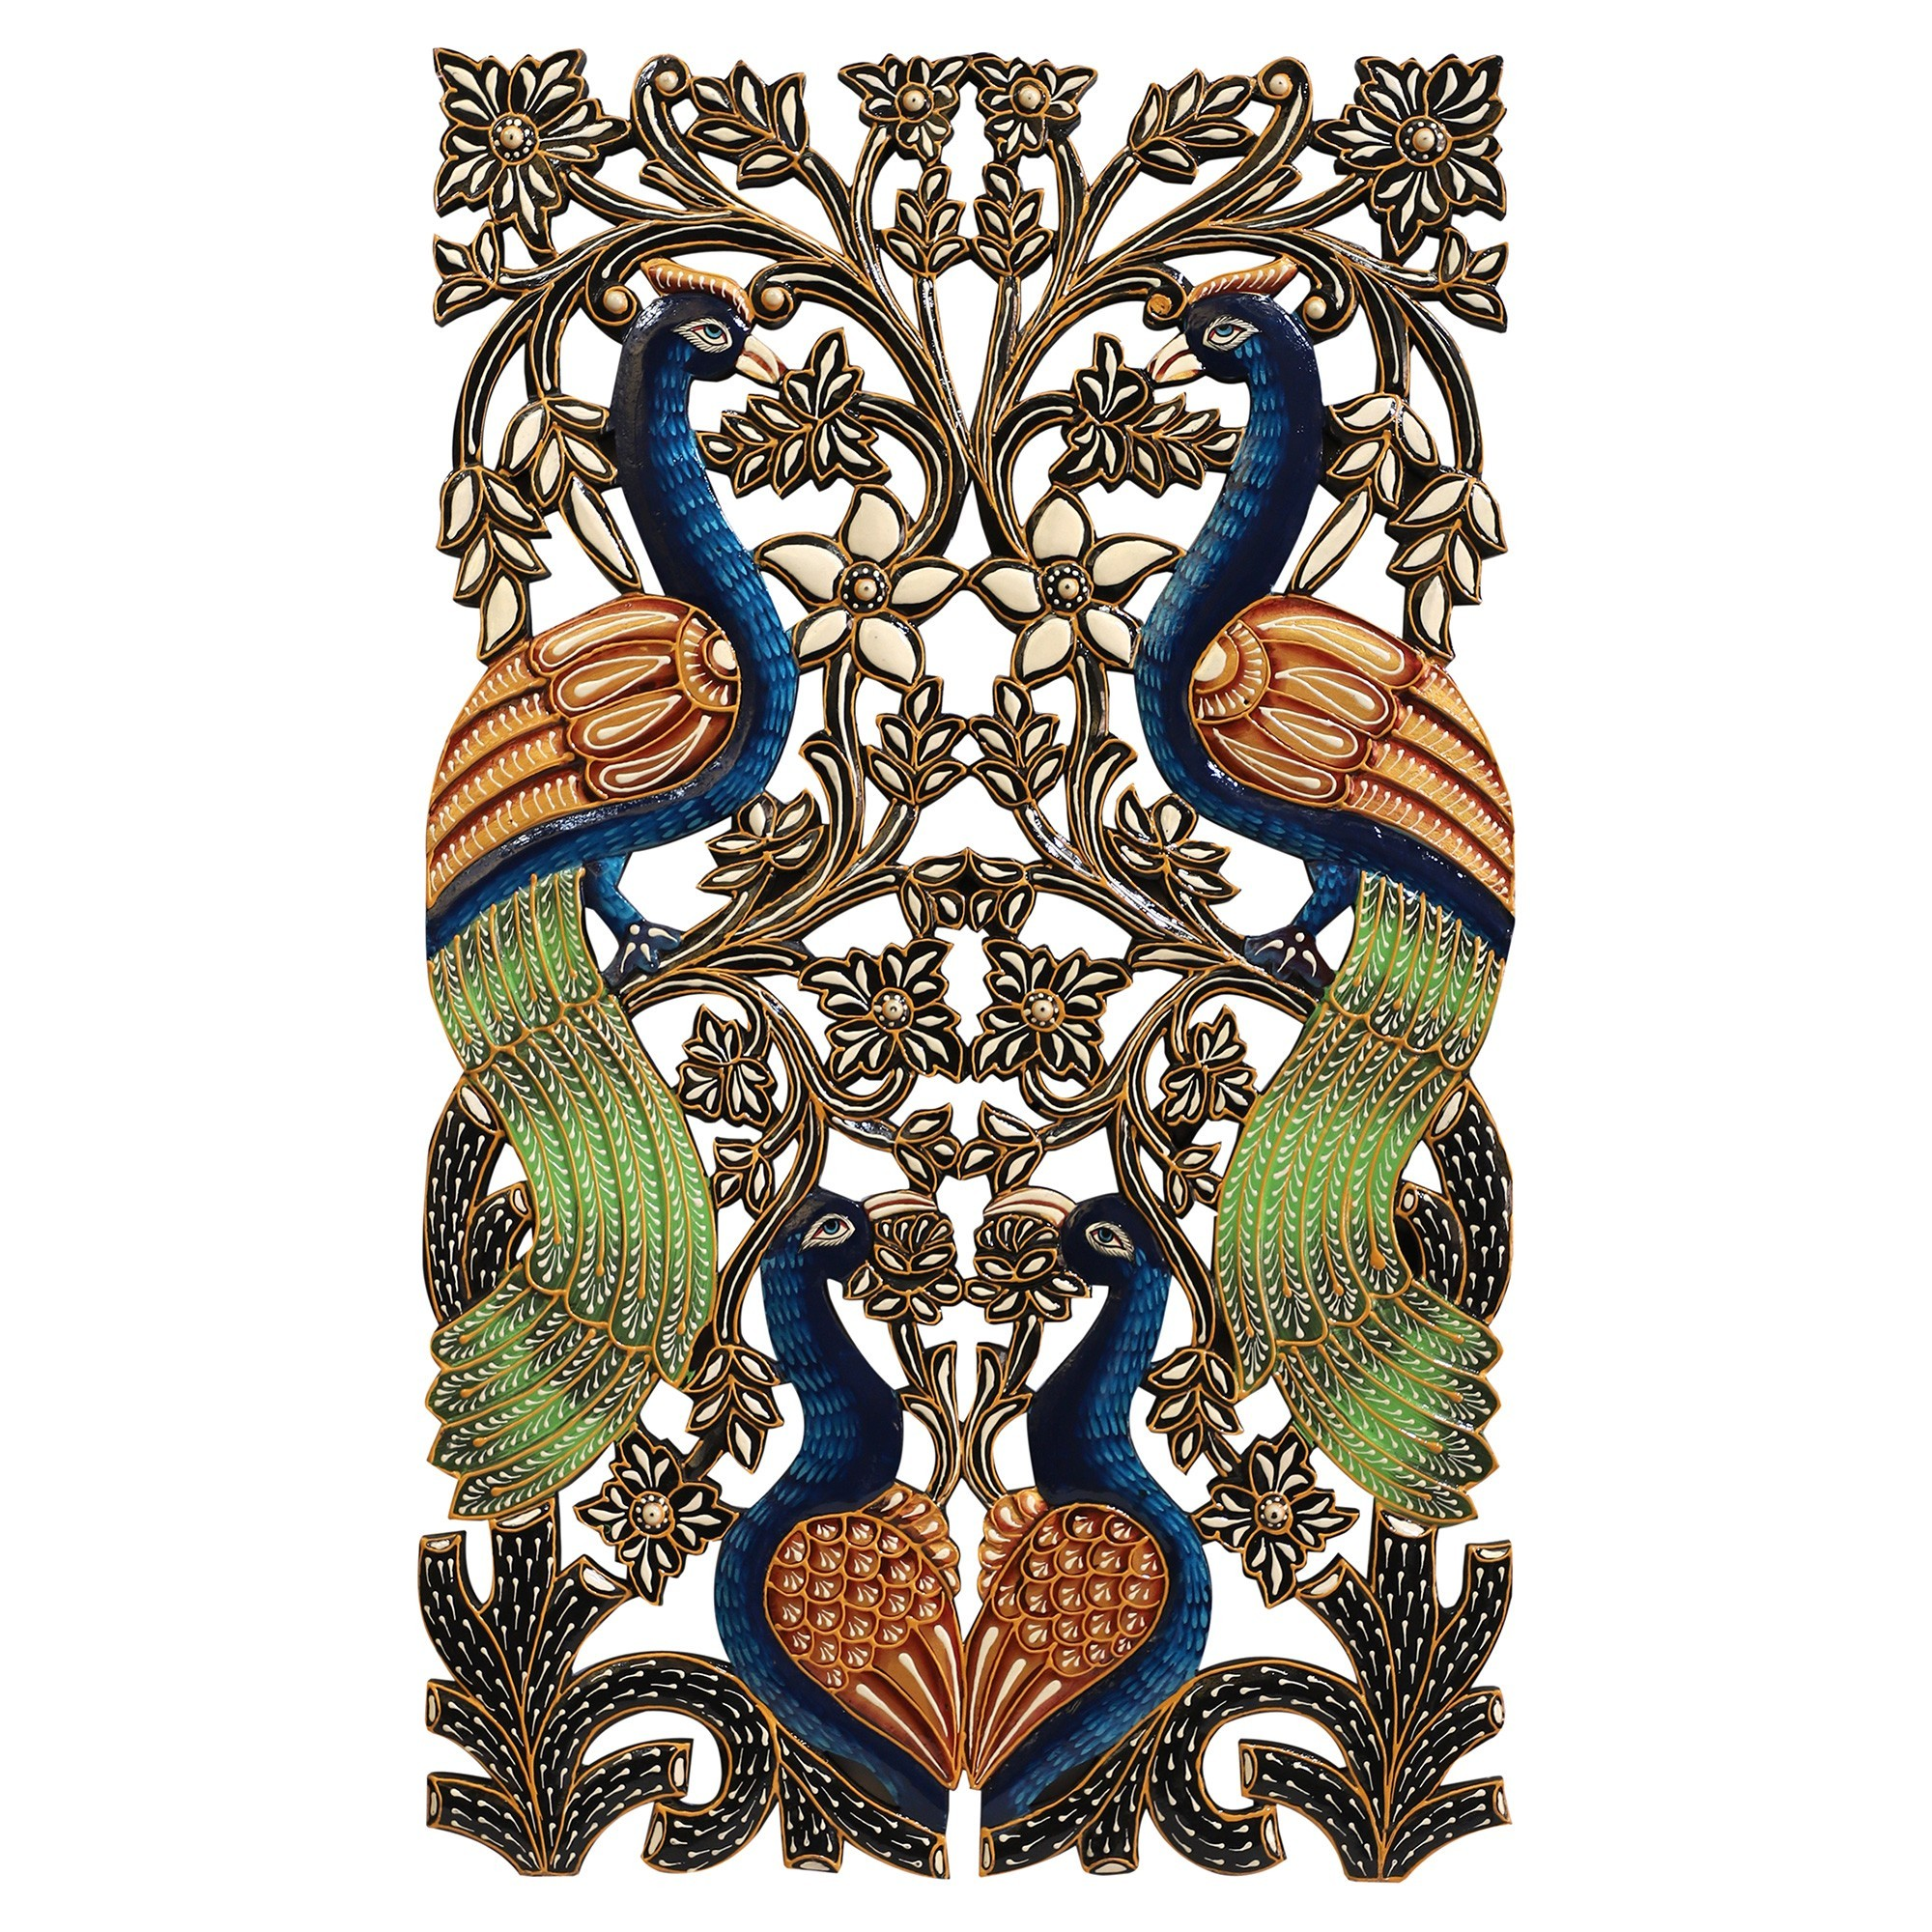 Gascon Hand Painted Wooden Peacock Wall Art, Rectangular, 76cm